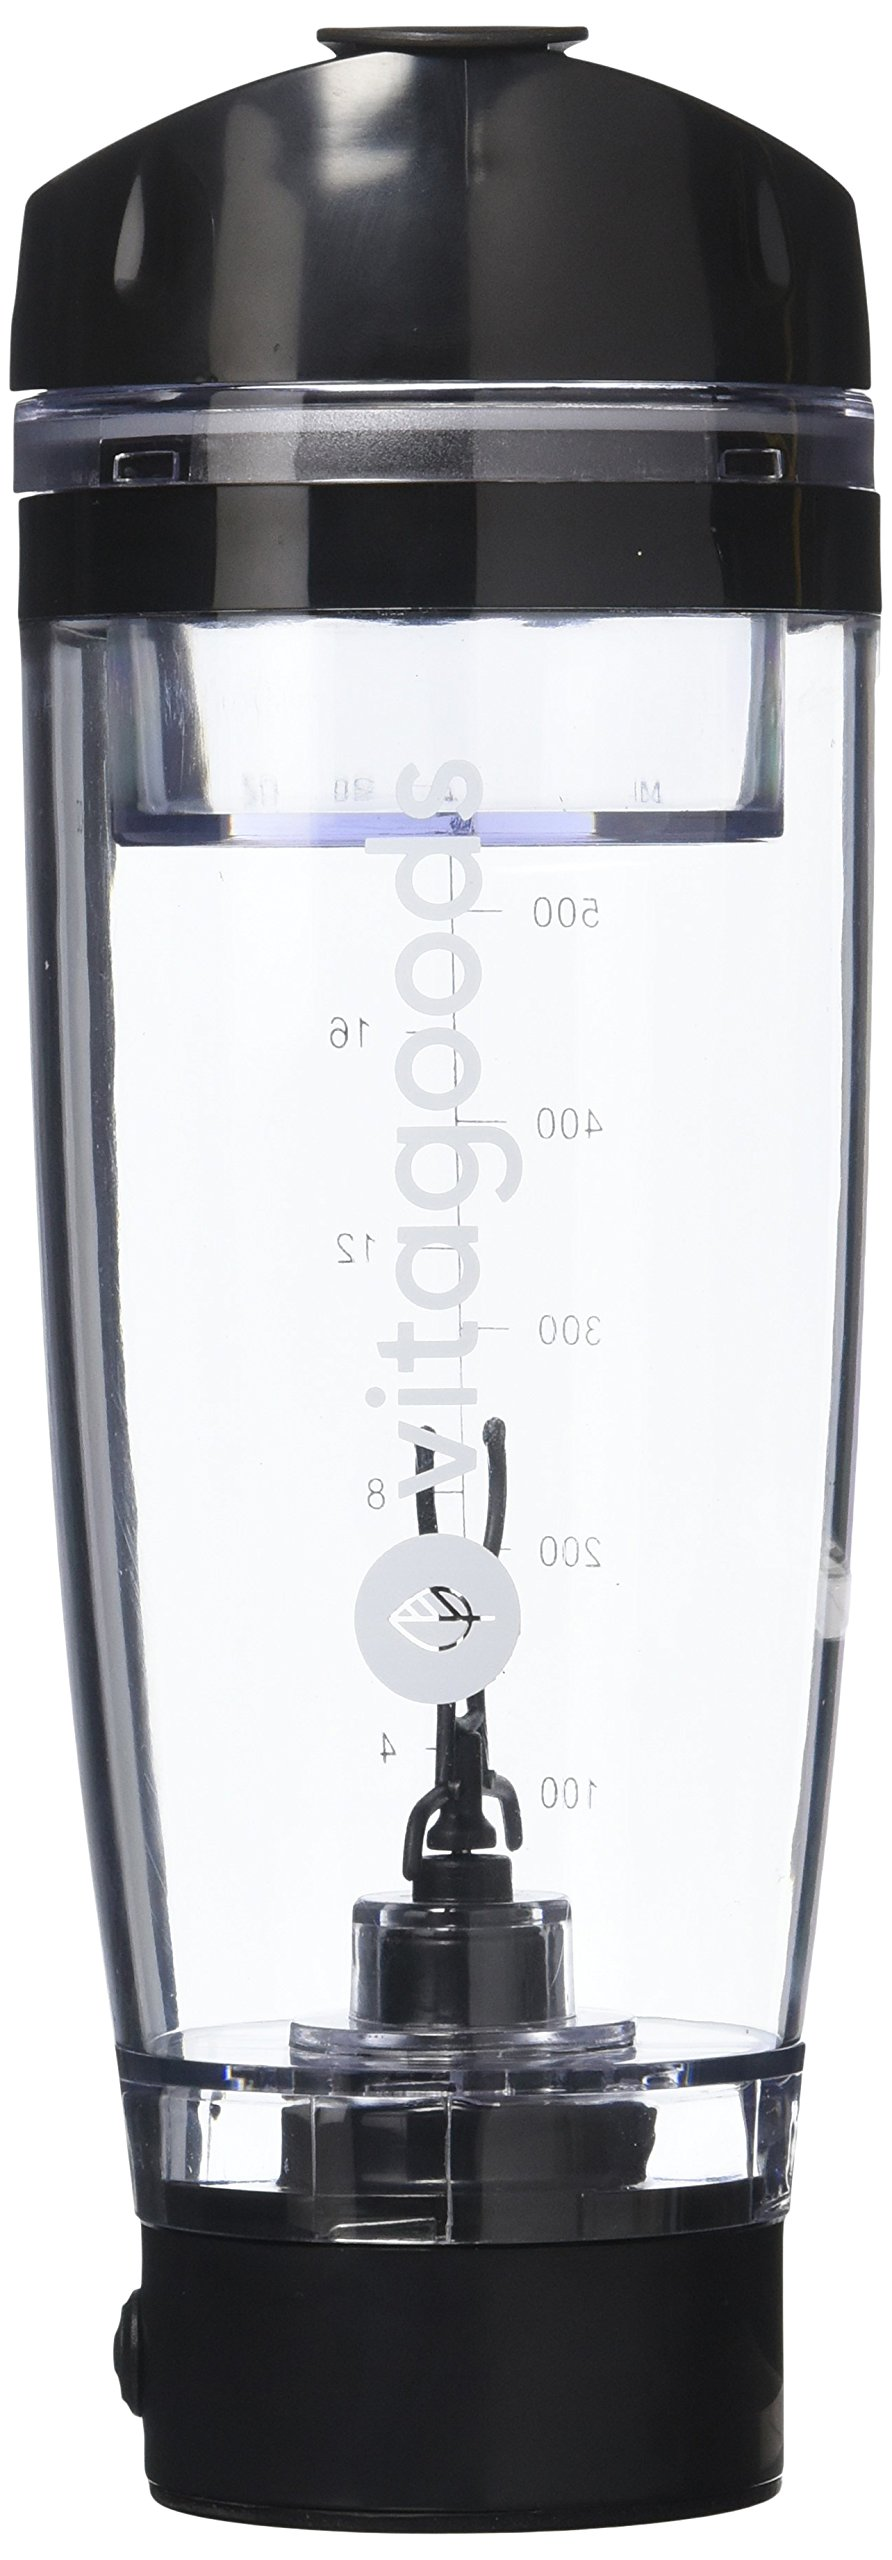 Vitagoods FitMix Pro Portable Mixer Shaker Bottle - Battery Powered, Leakproof and BPA-Free Construction - 600ml, Black